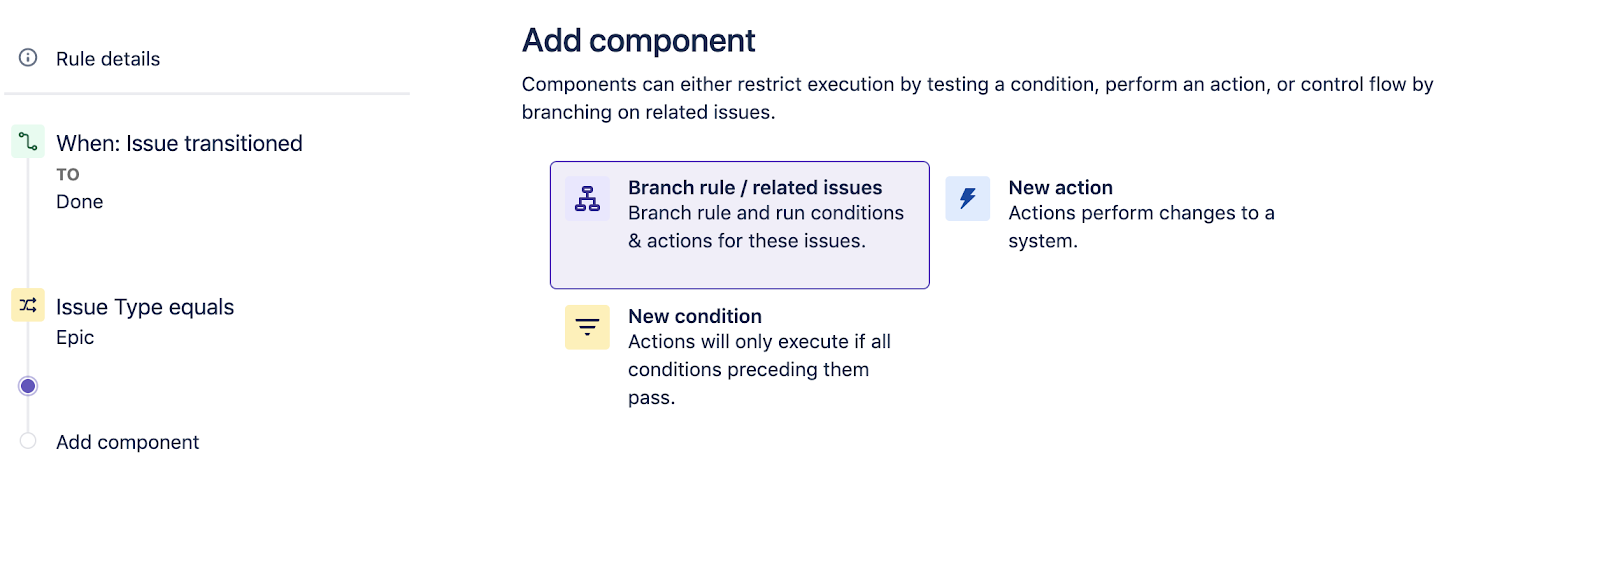 Add branch rule component